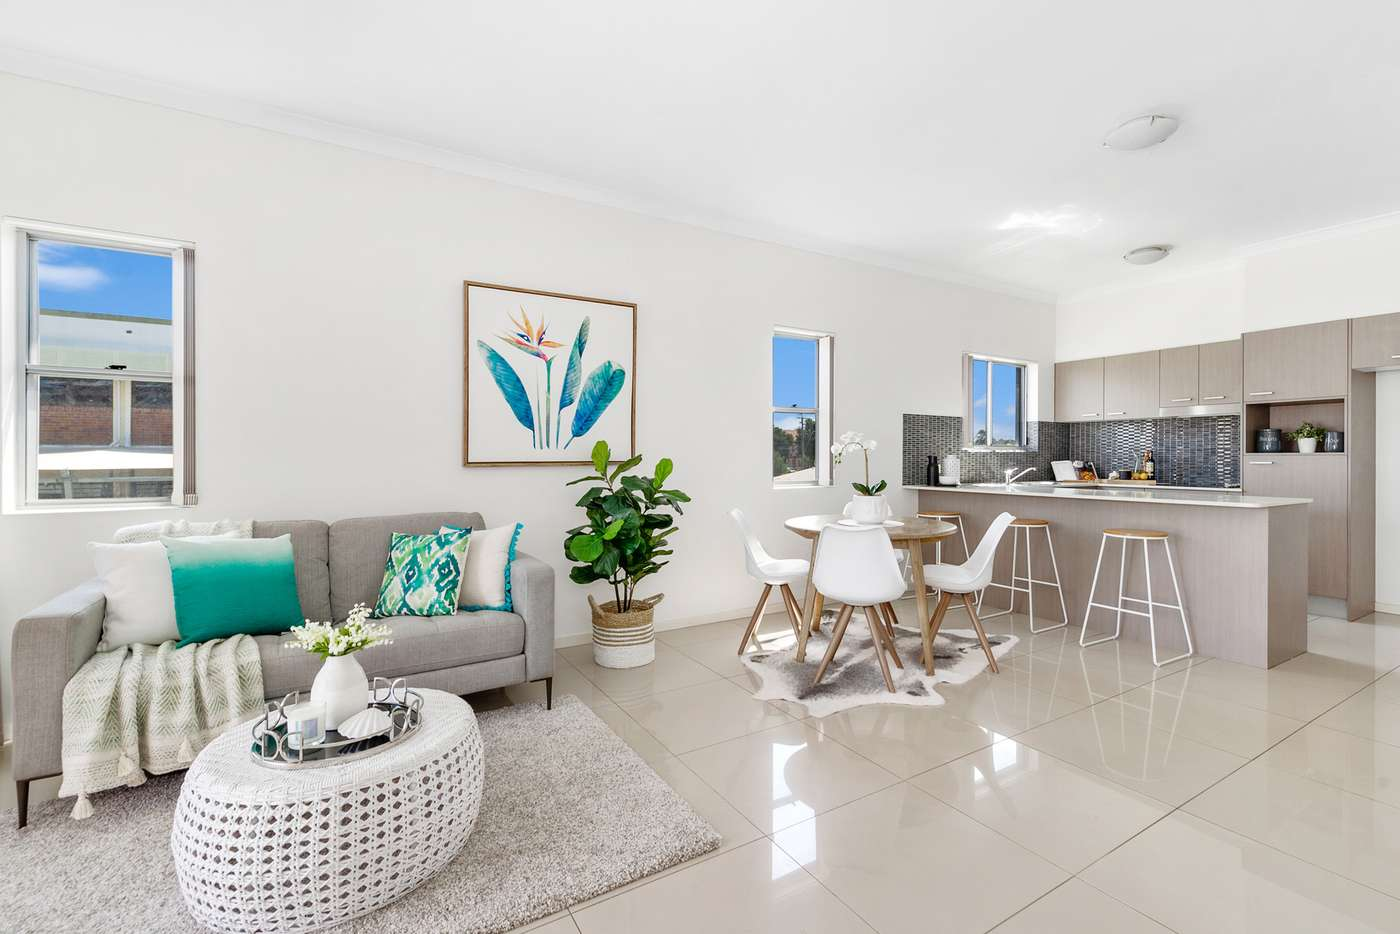 Main view of Homely apartment listing, 8/17 Donkin Street, Nundah QLD 4012